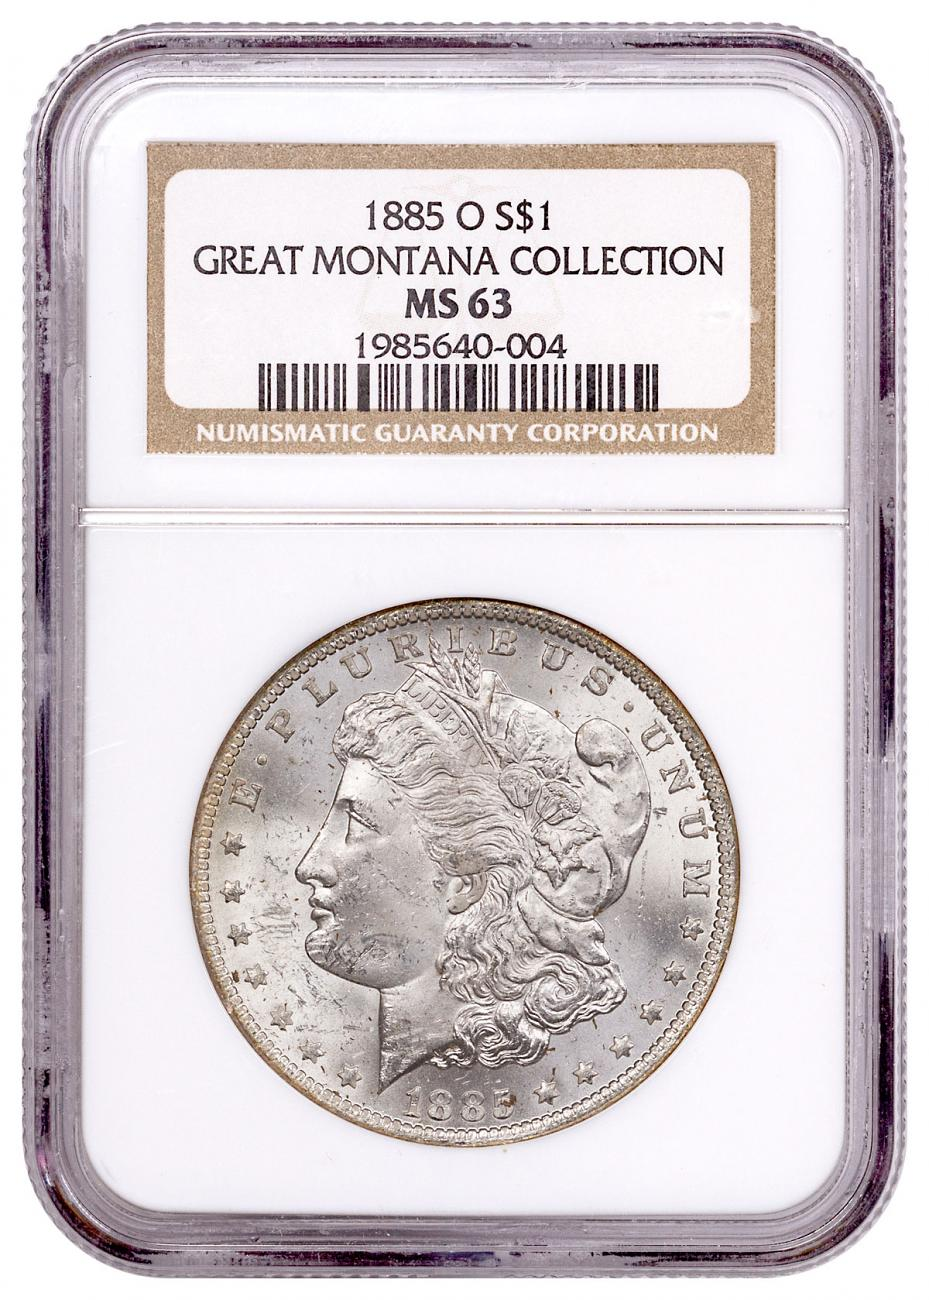 1885-O Morgan Silver Dollar From the Great Montana Collection NGC MS63 Toned CPCR 0004